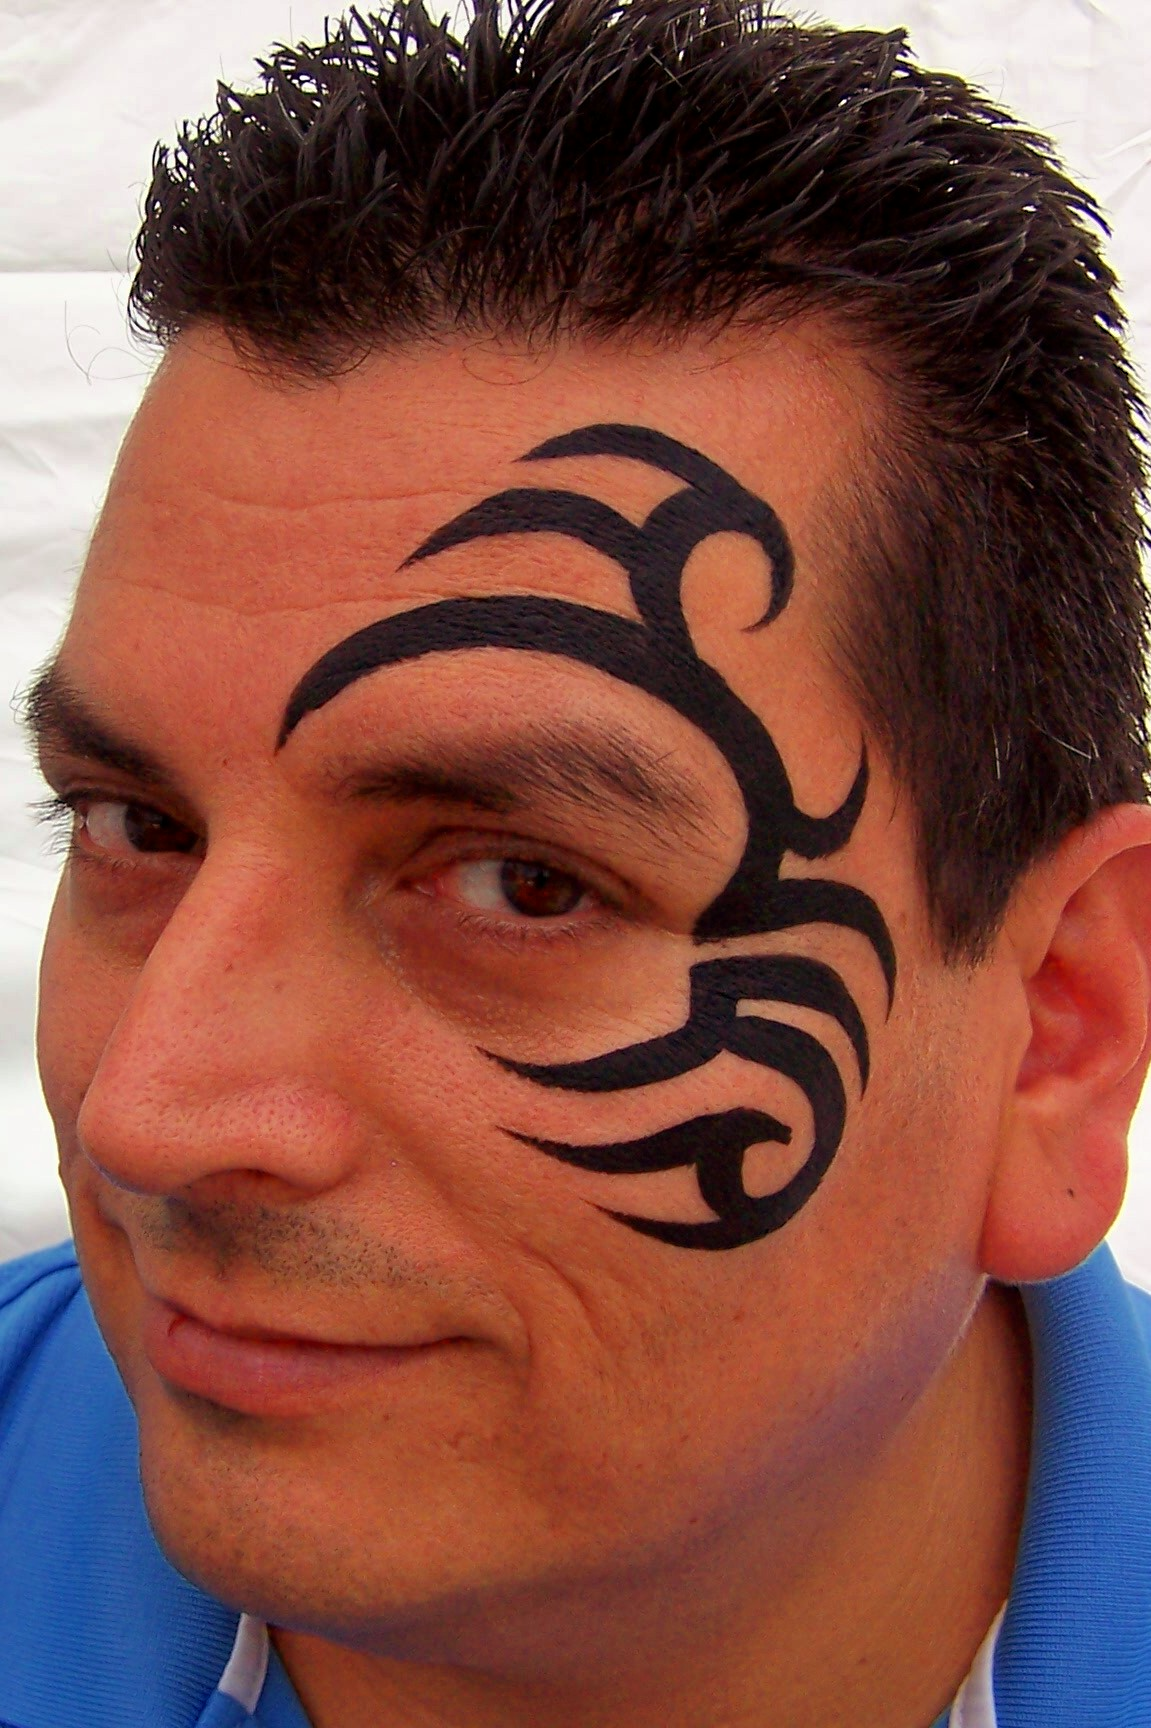 Pictures joyful faces face painting entertainment for Painting ideas for boys